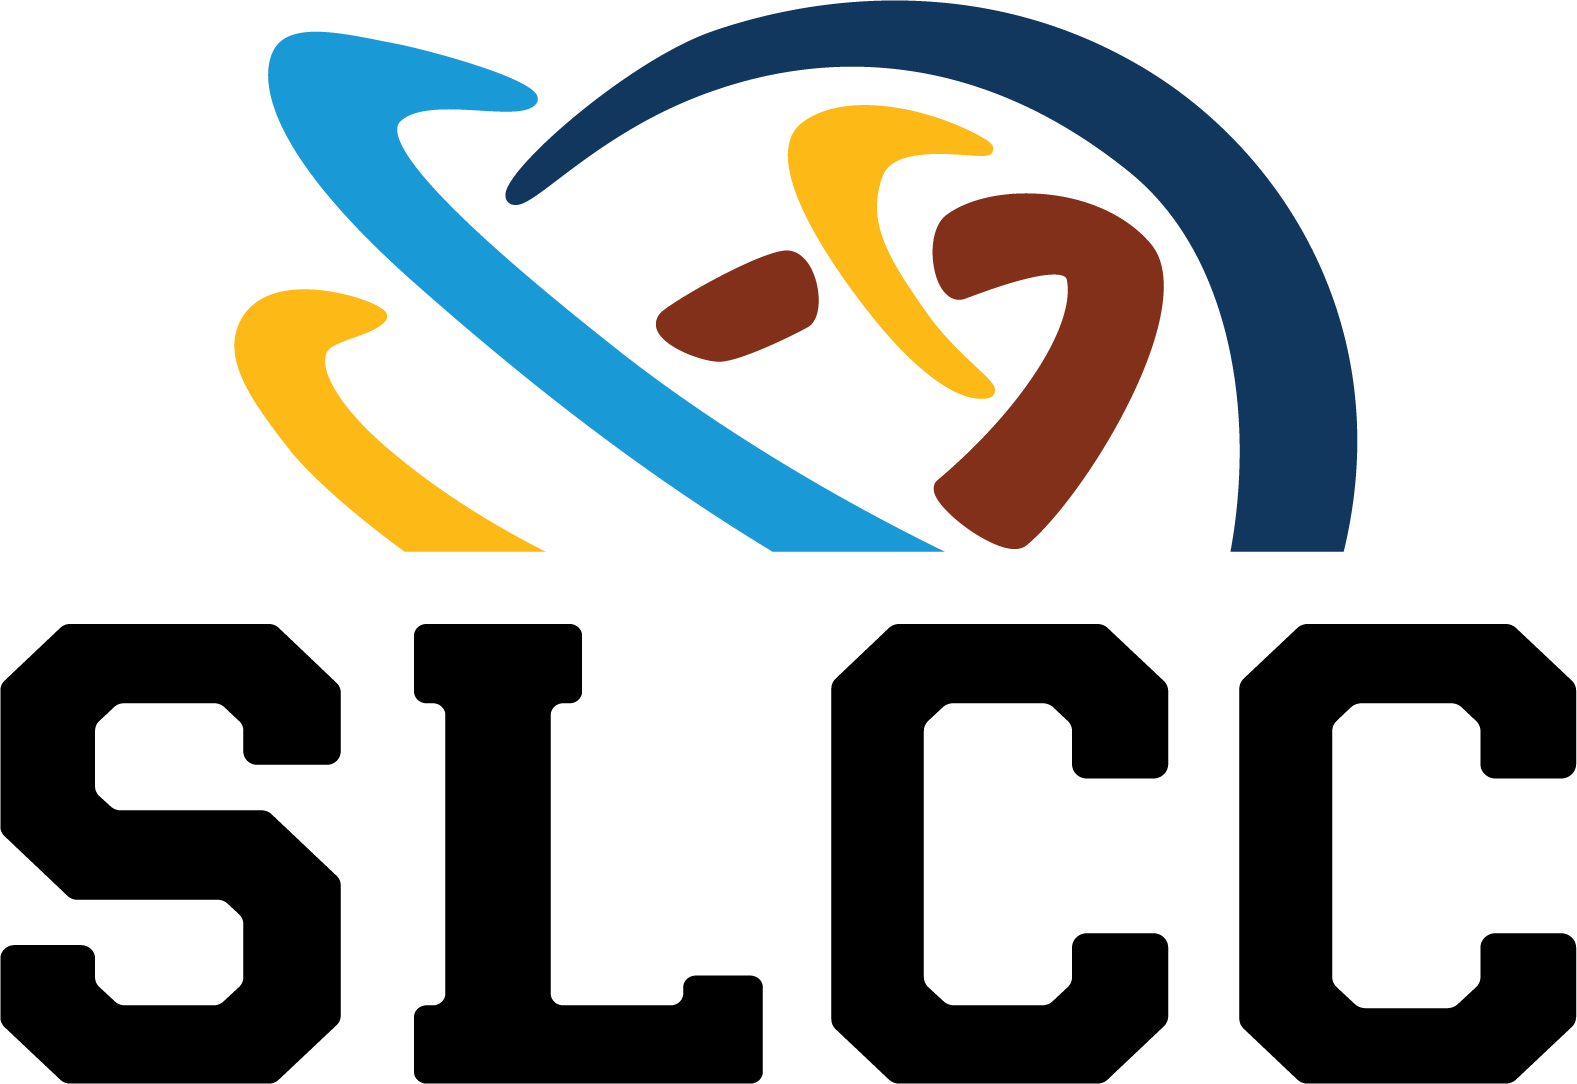 SLCC_Bug_Stacked_2017_color.png